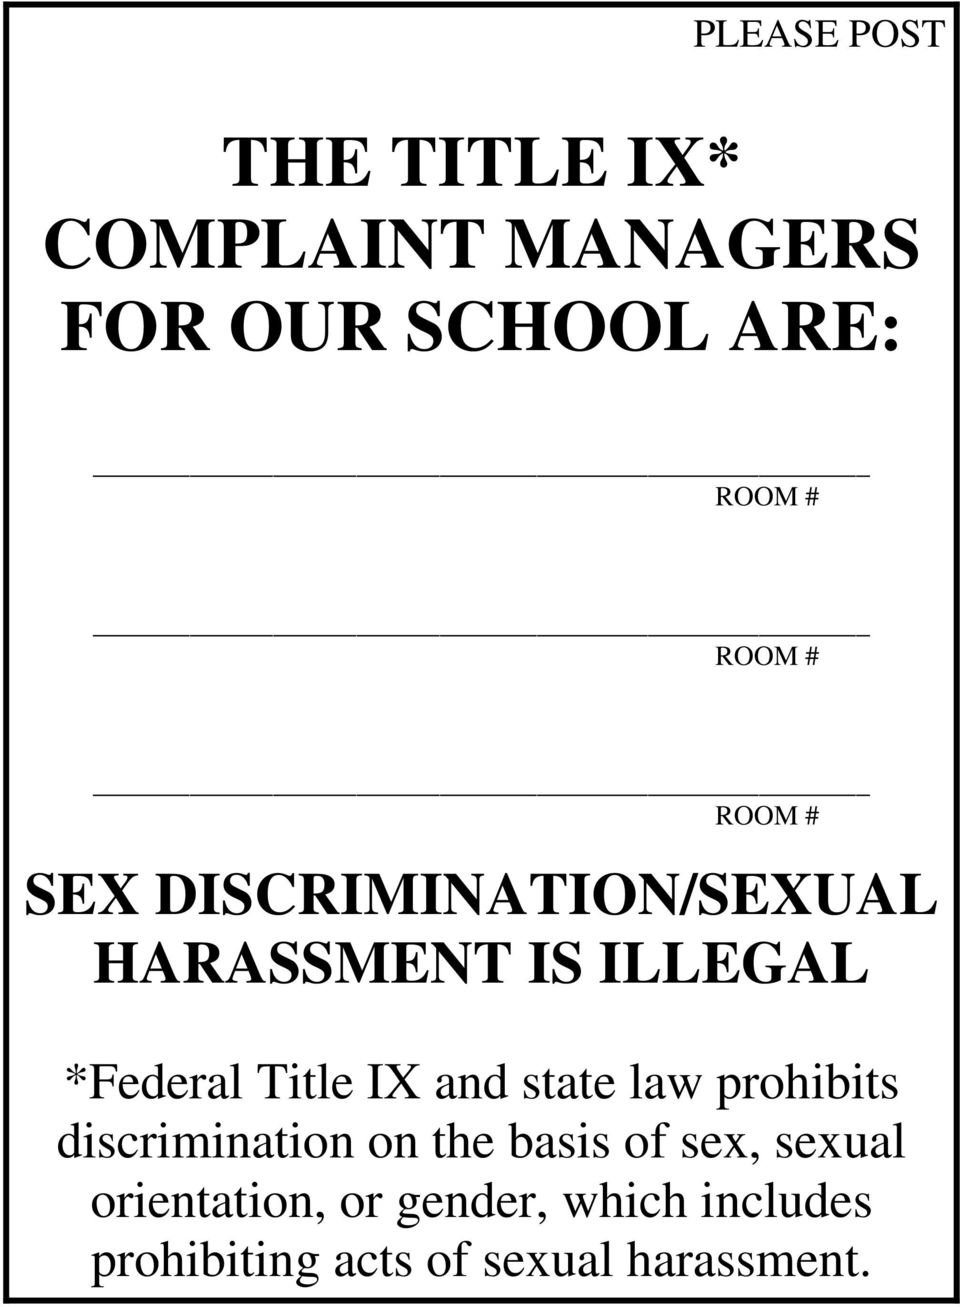 Title IX and state law prohibits discrimination on the basis of sex,